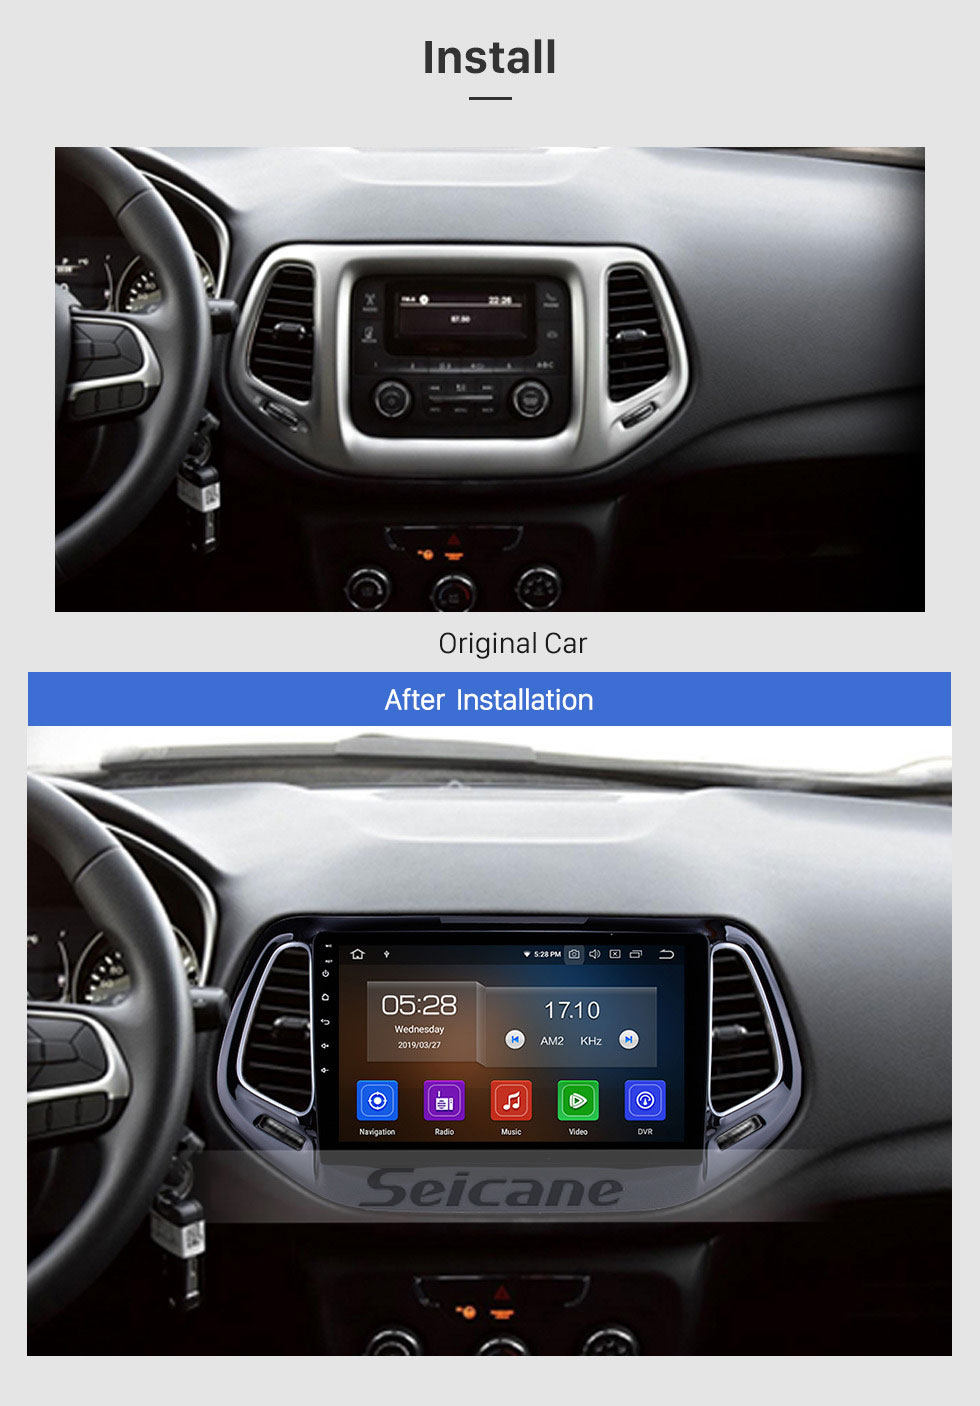 Seicane Android 9.0 Navigation GPS pour 2017 Jeep Compass 10,1 pouces HD Écran tactile Multimédia Radio Bluetooth MP5 musique Lien de miroir WIFI Support USB 4G Carplay SWC OBD2 Rearview